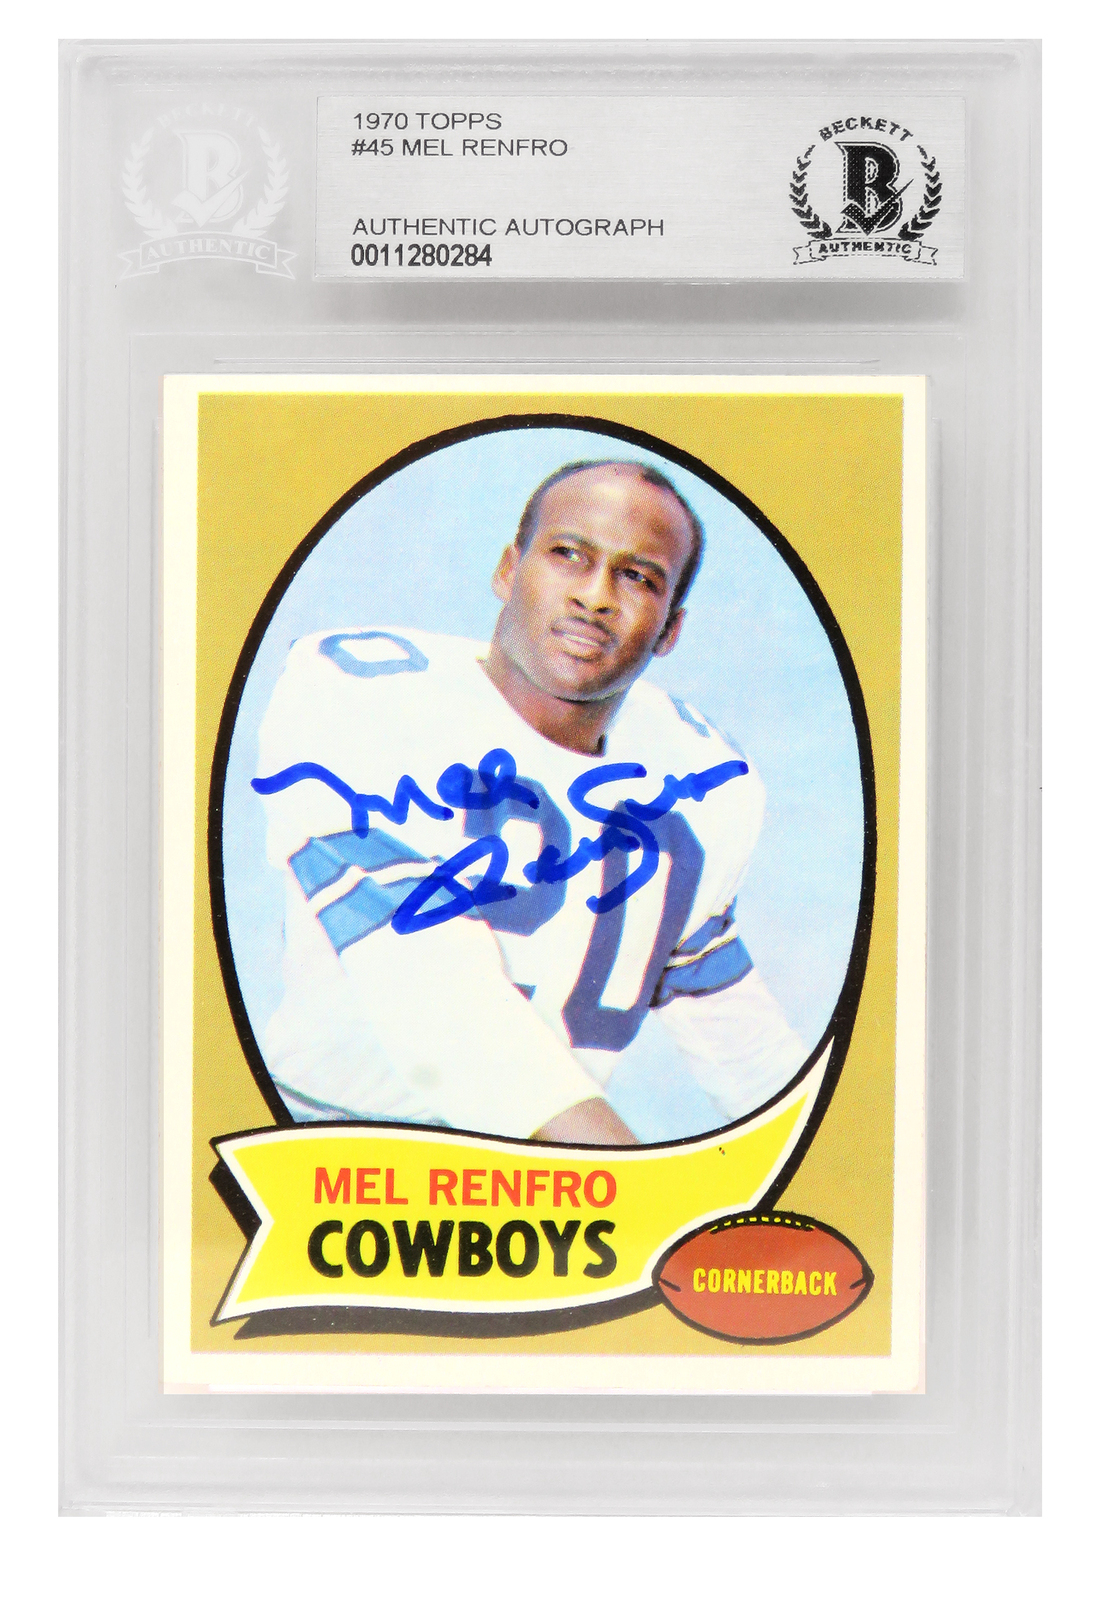 Primary image for Mel Renfro Signed Dallas Cowboys 1970 Topps Football Card #45